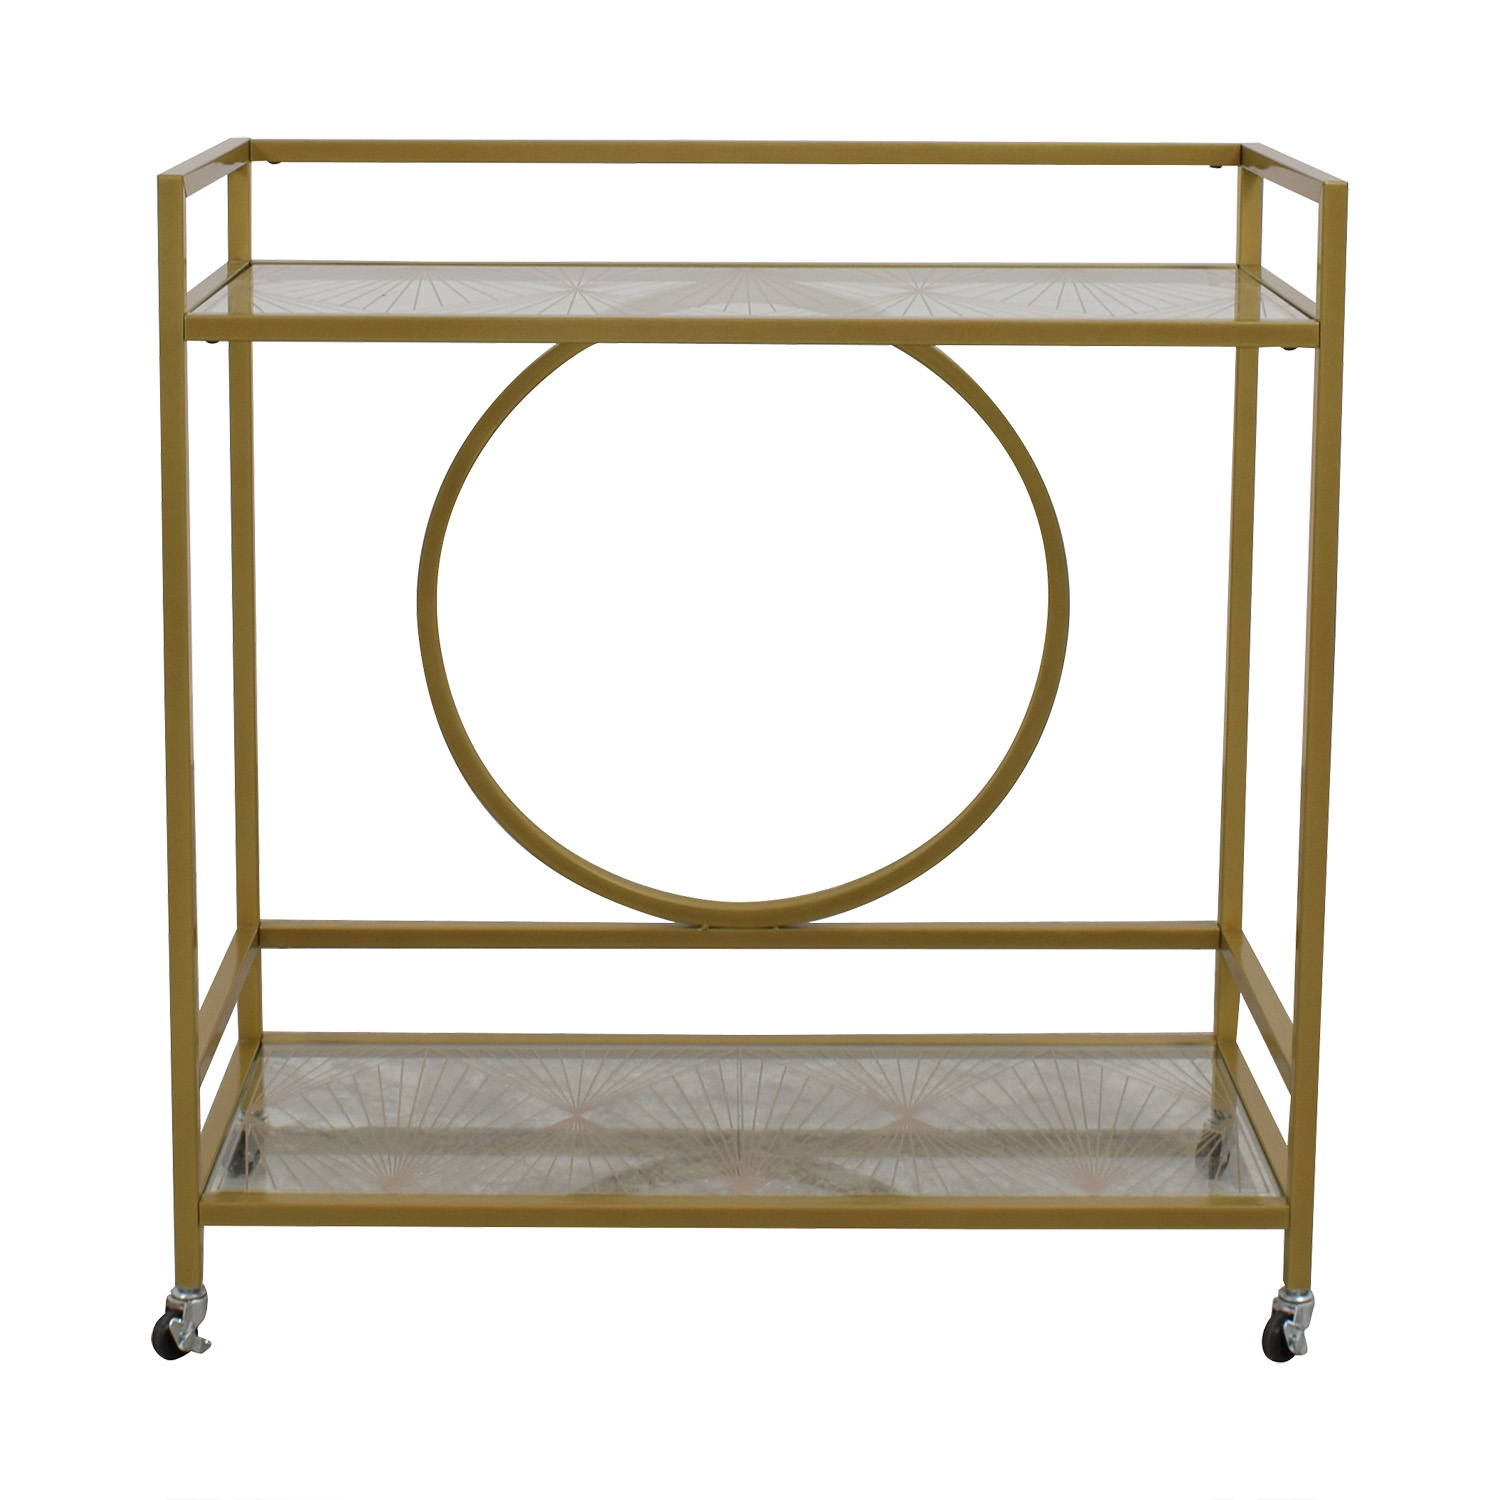 Cynmax Cynmax Sauder International Lux Bar Cart for sale